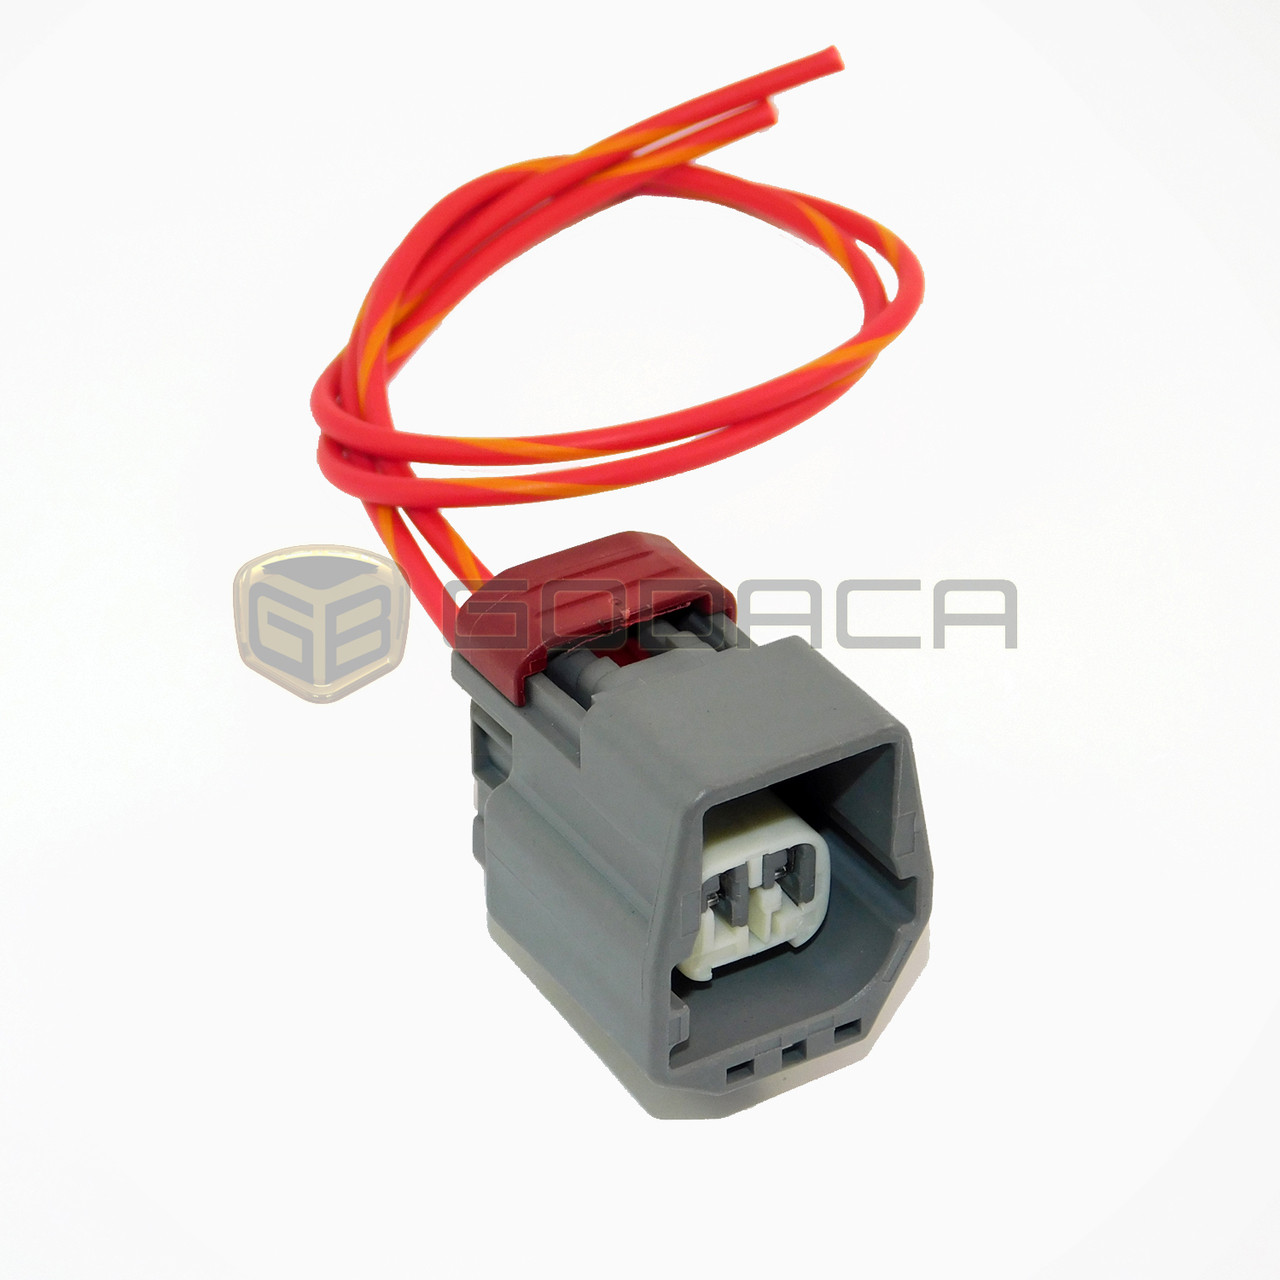 1x Connector 2 Pin 2-way for Ford Mate WPT-987